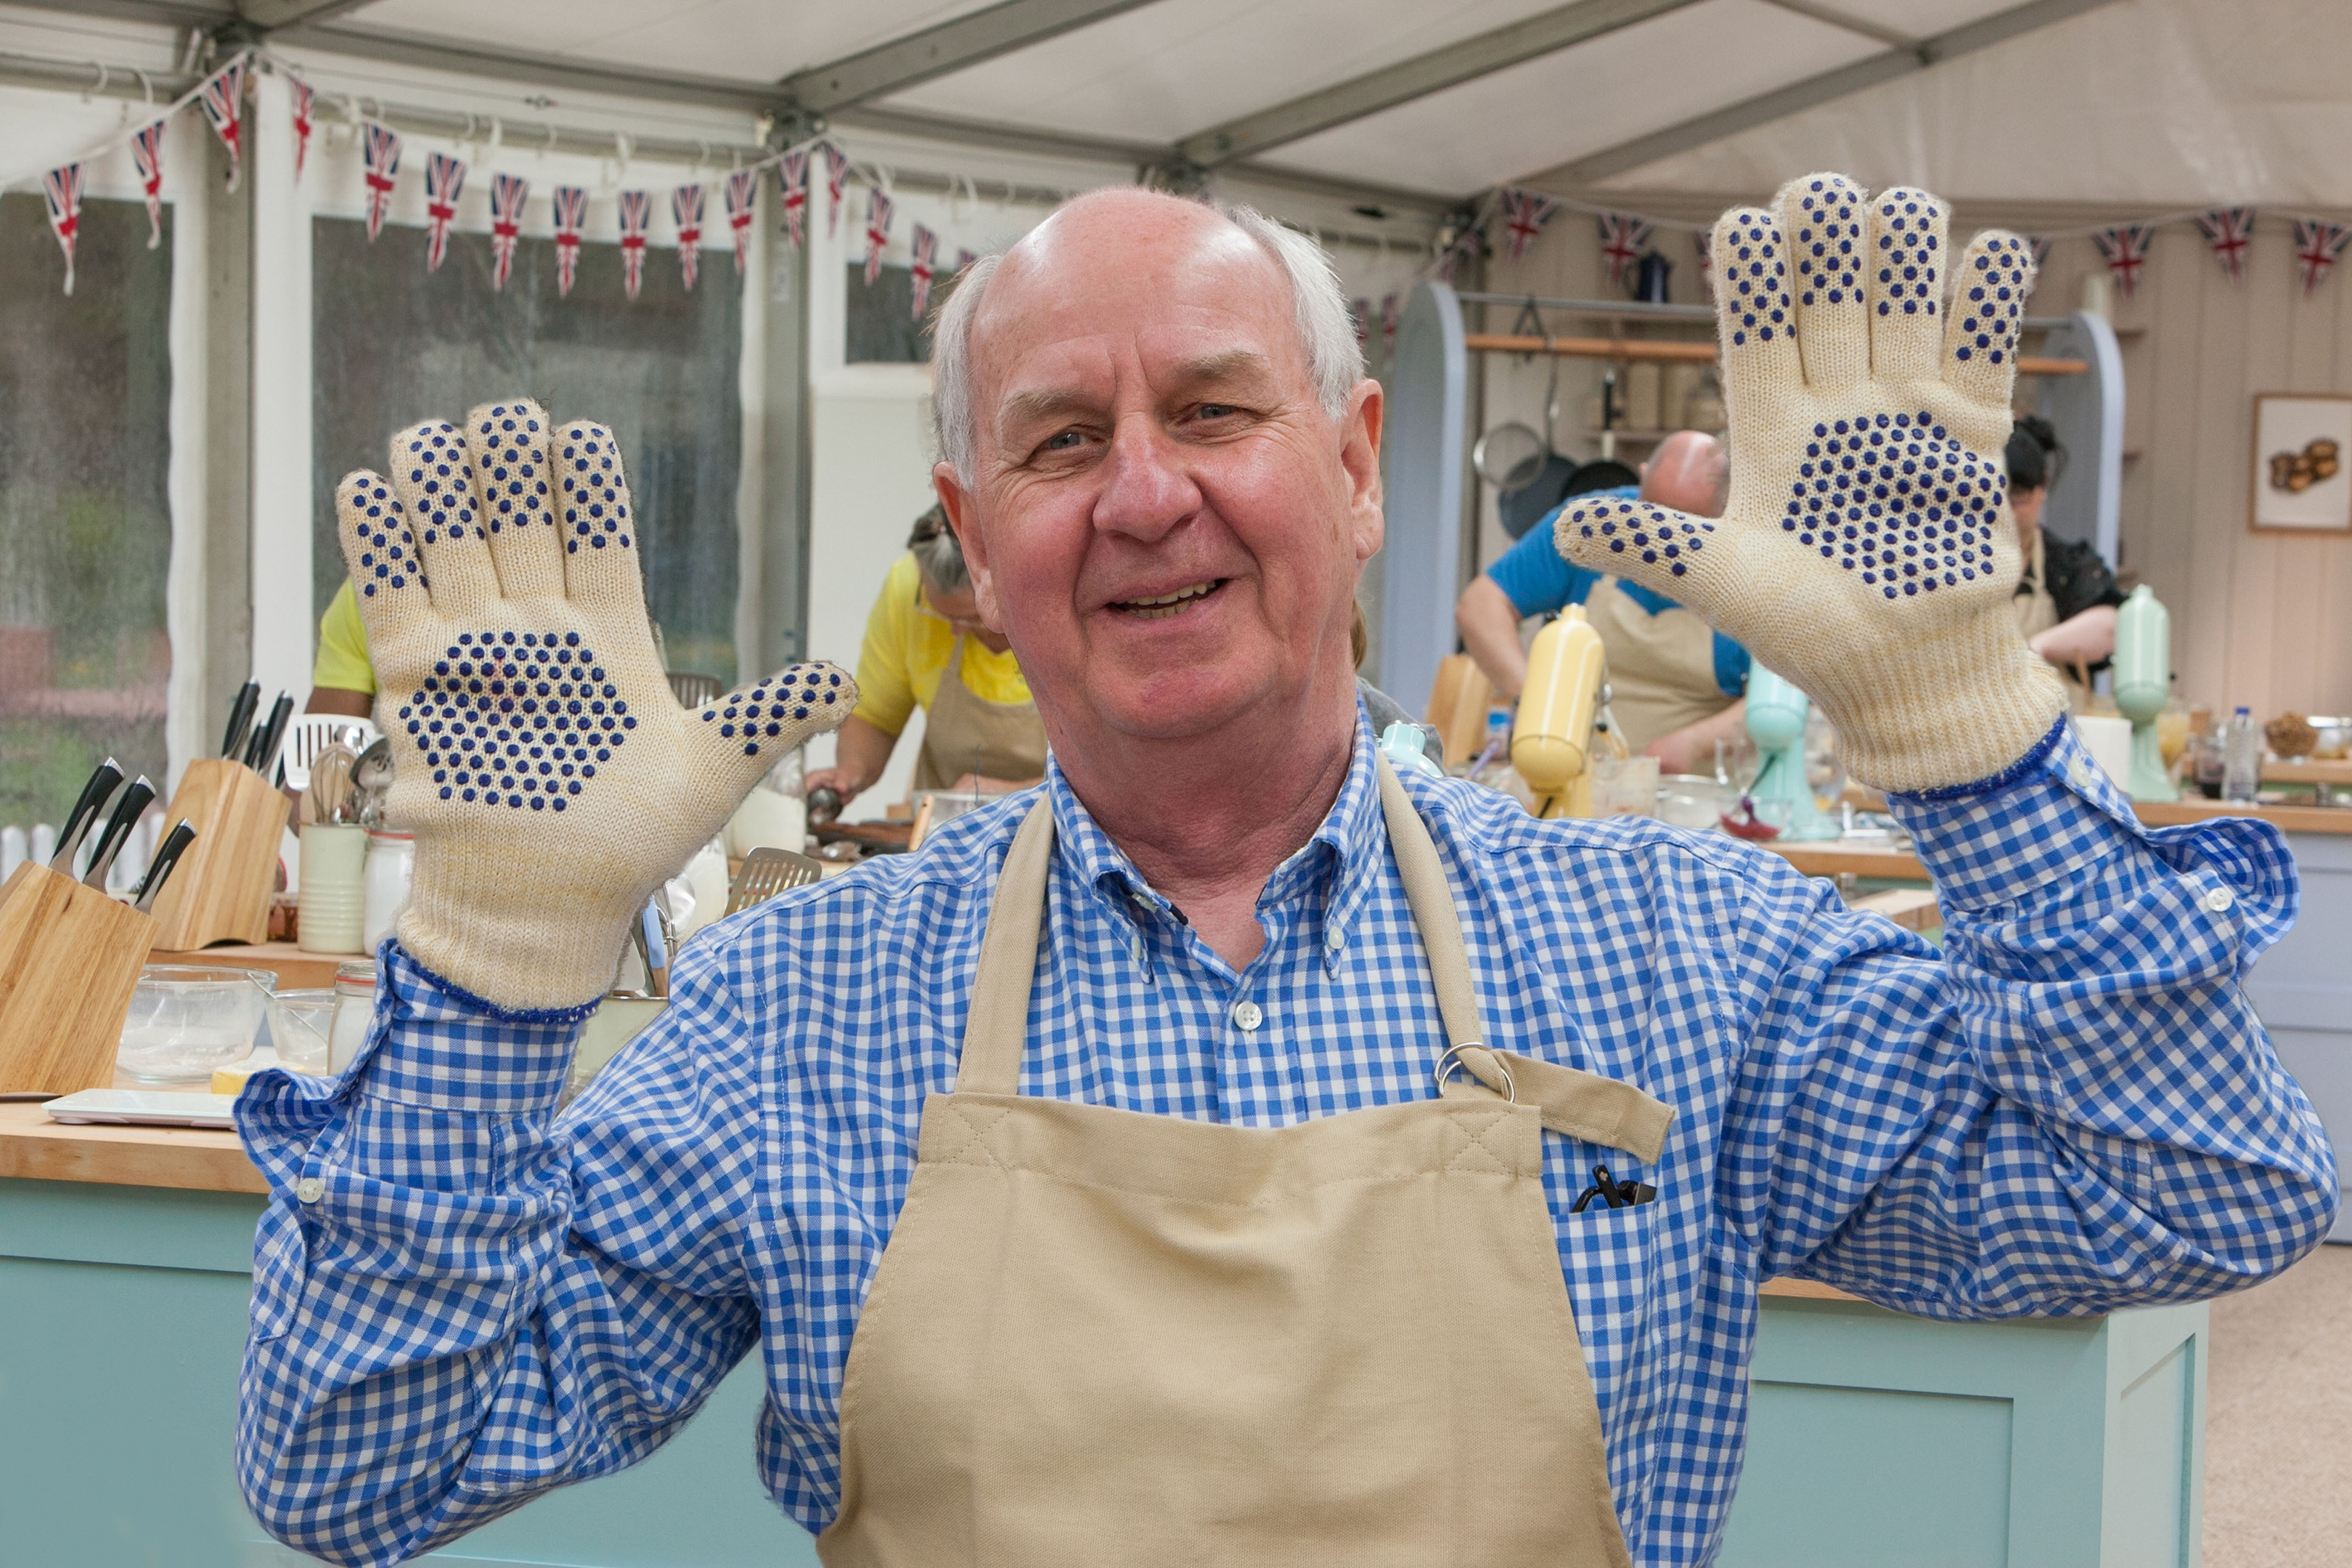 The Great British Bake Off 2014 star Norman